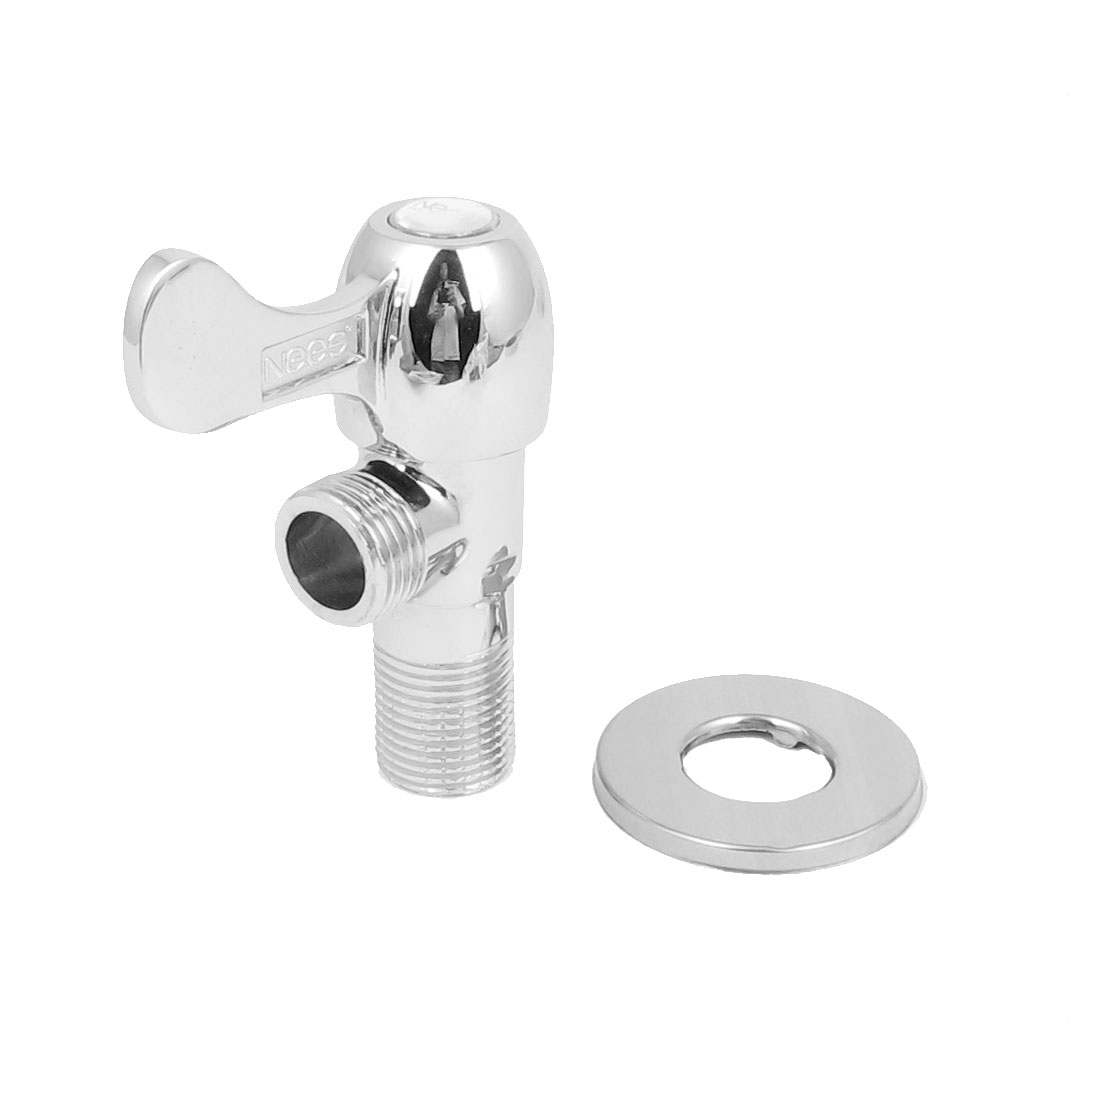 Kitchen Bathroom Basin 1/2BSP Male Thread Stainless Steel Water Tap Faucet